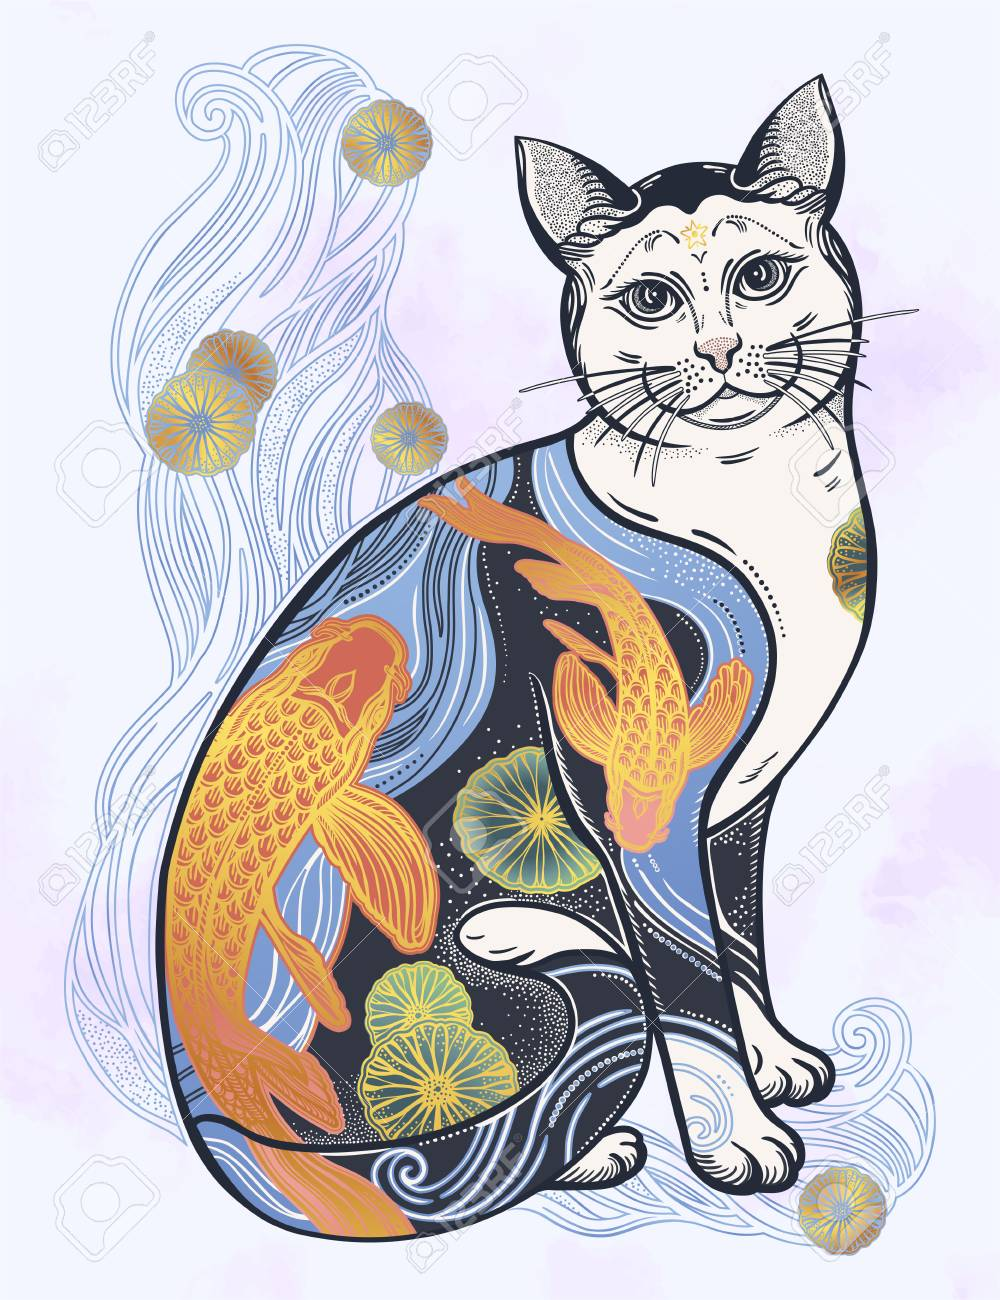 Happy Japanese folklore cat with traditional flower and fish